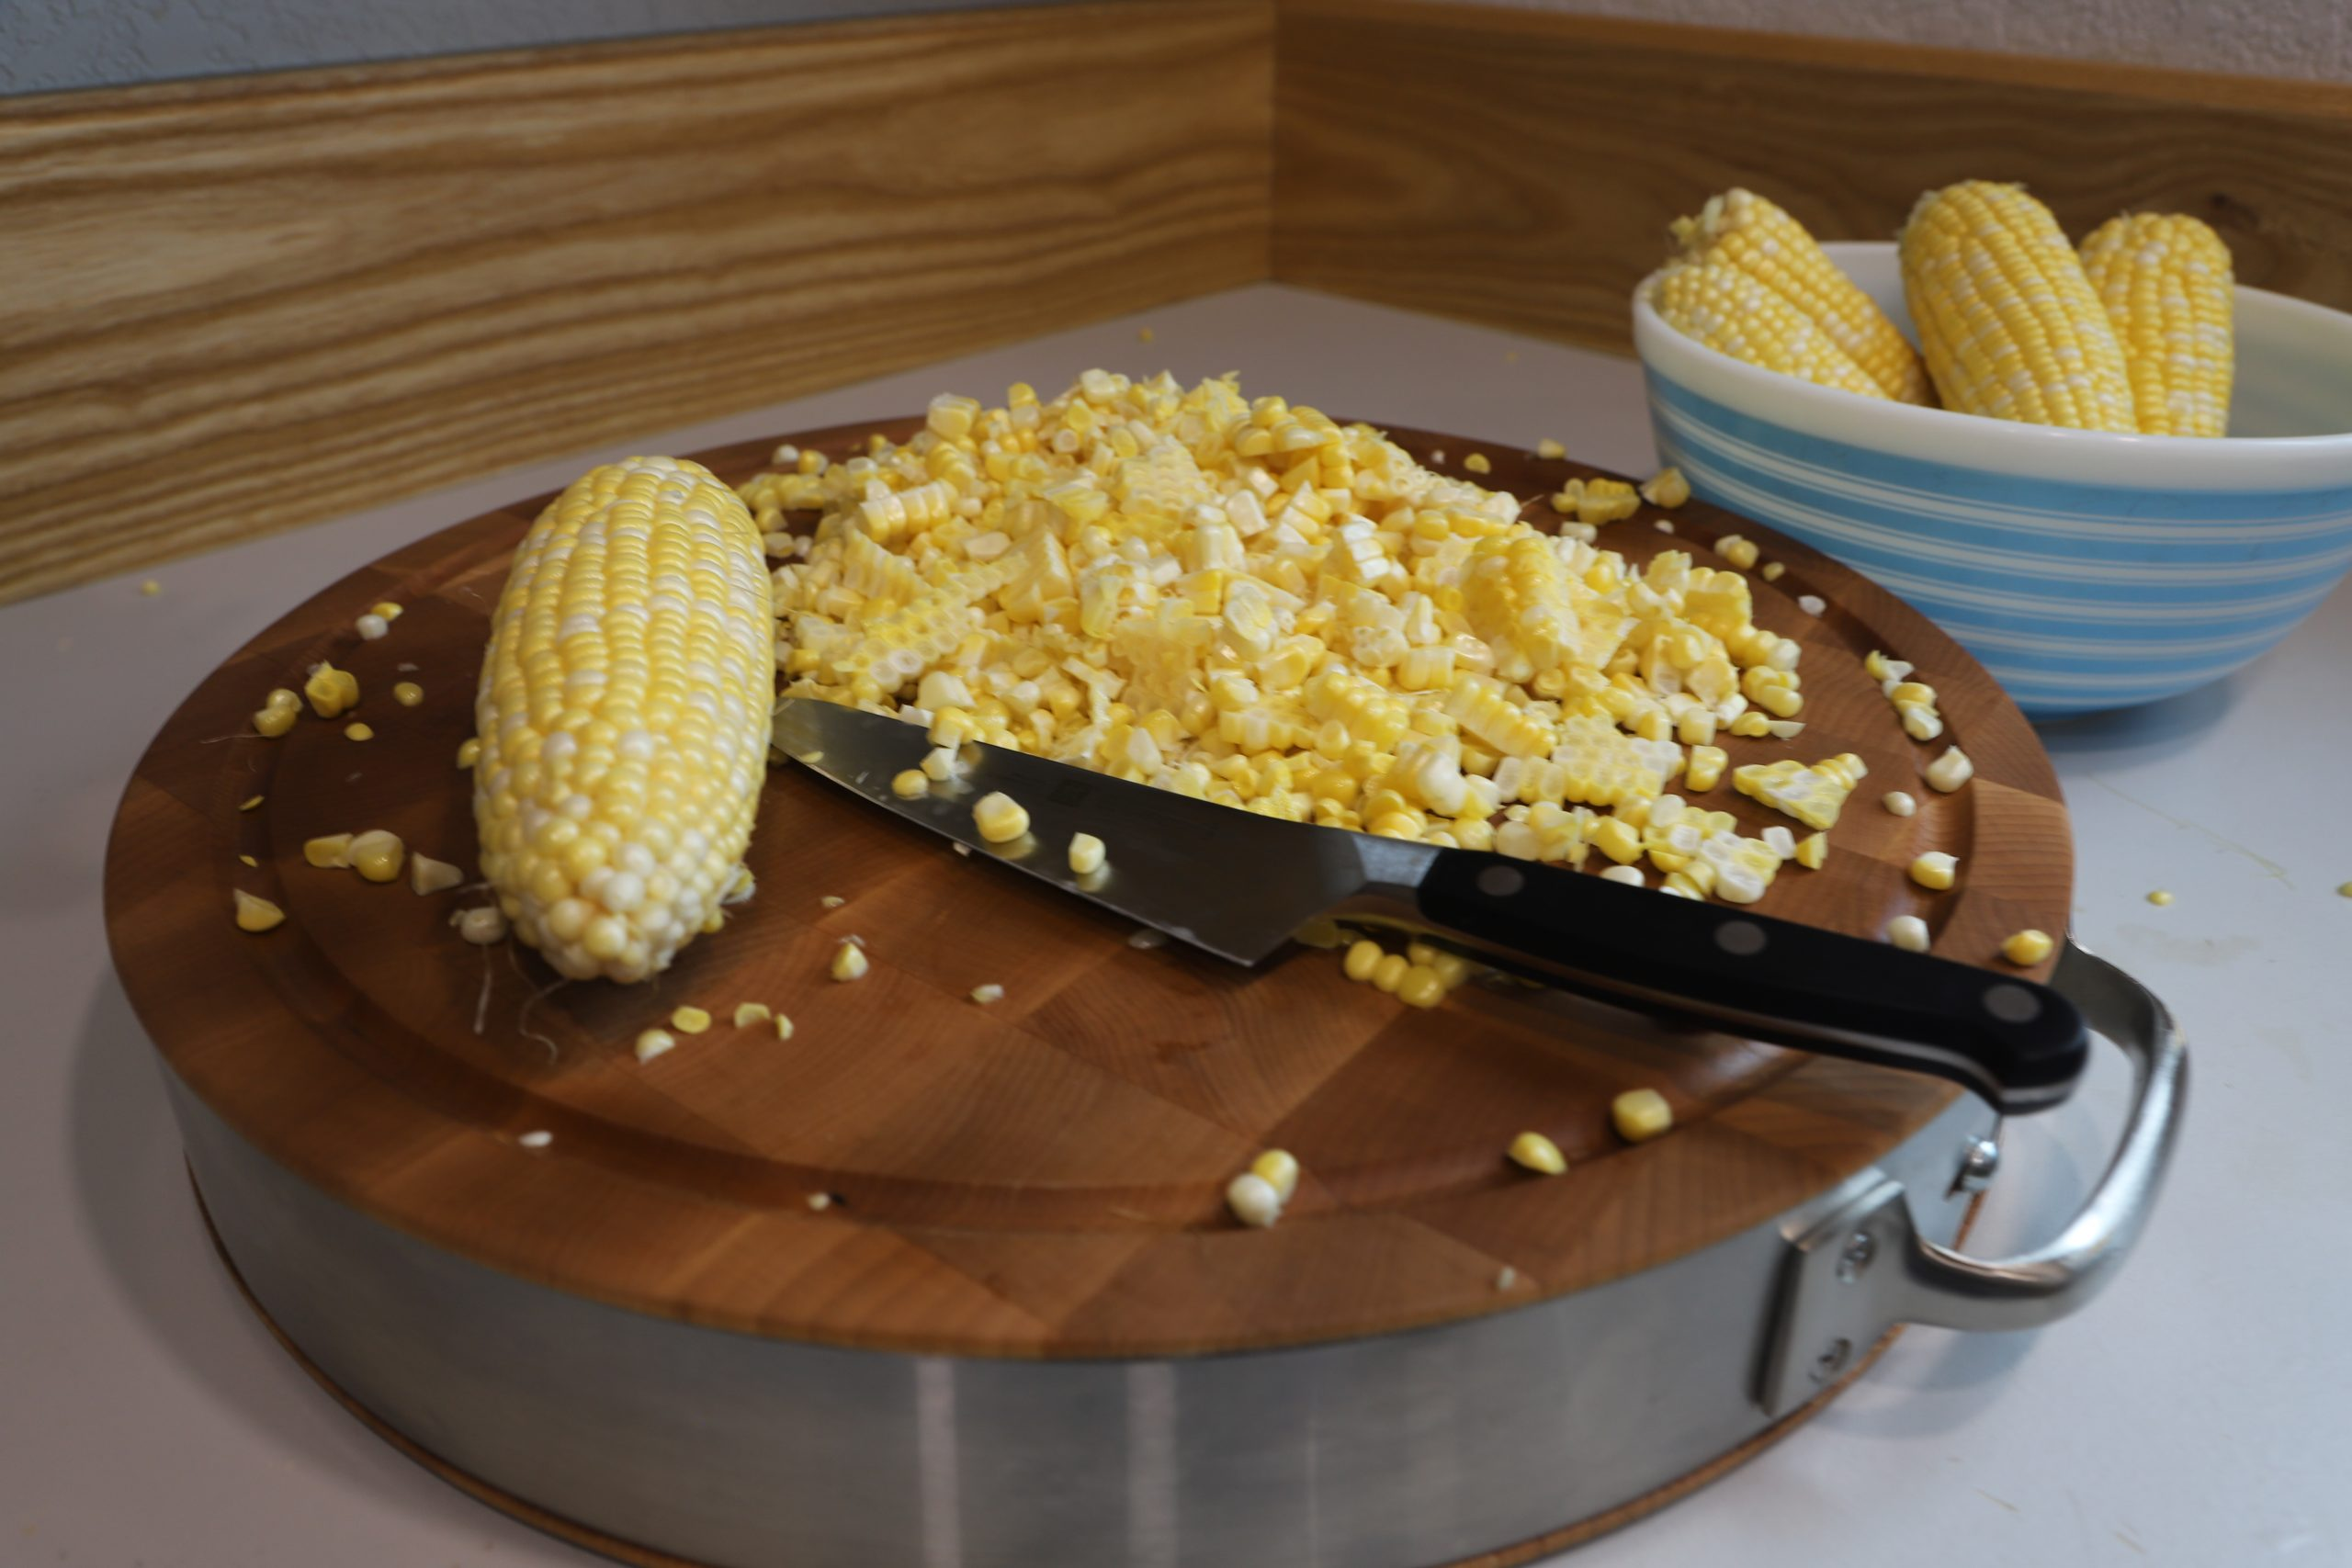 shelled corn and corn on cob